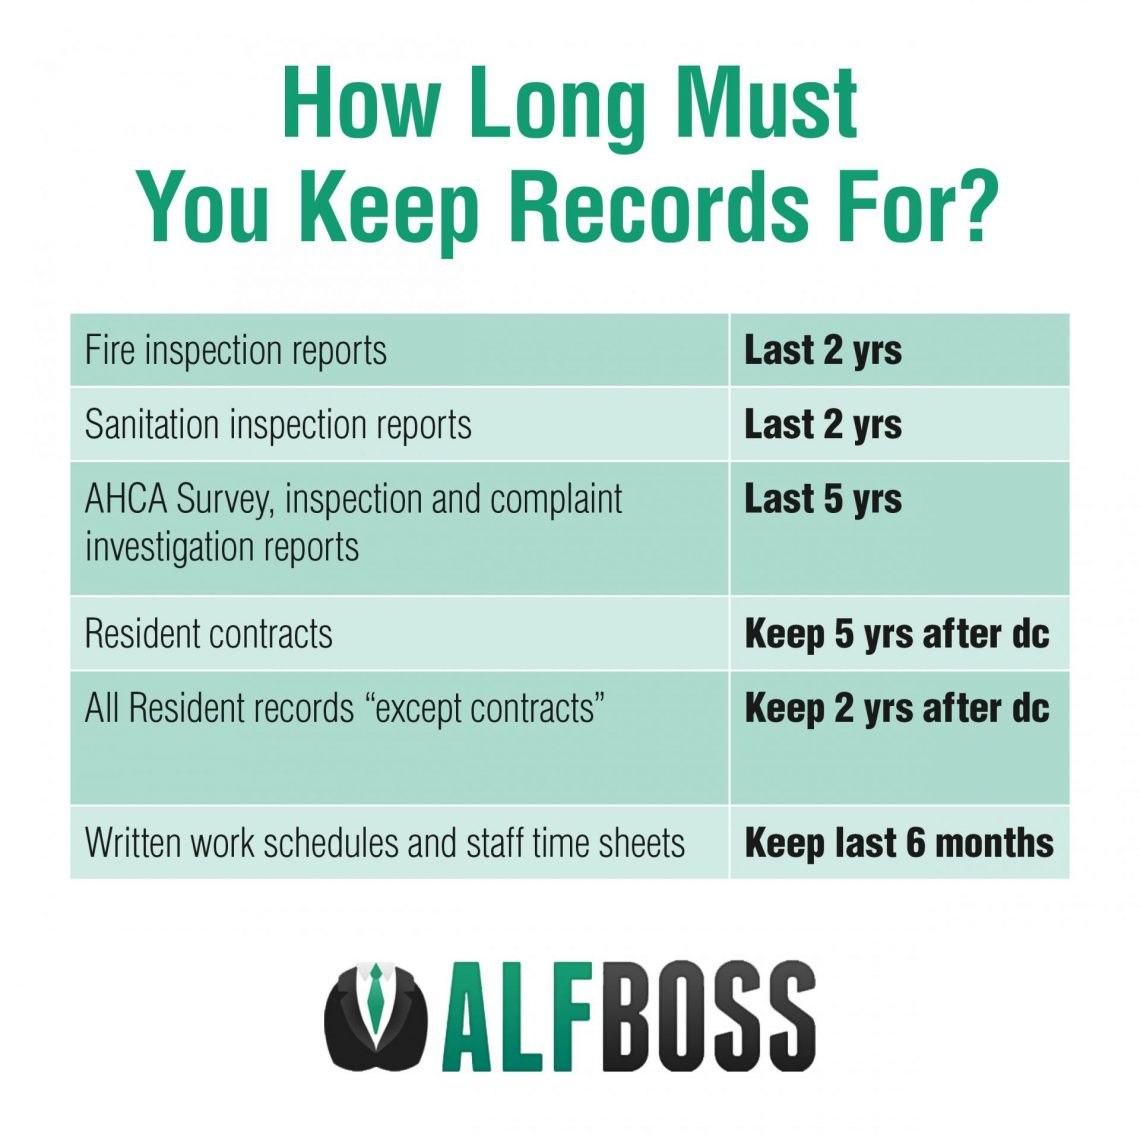 ALF Boss records